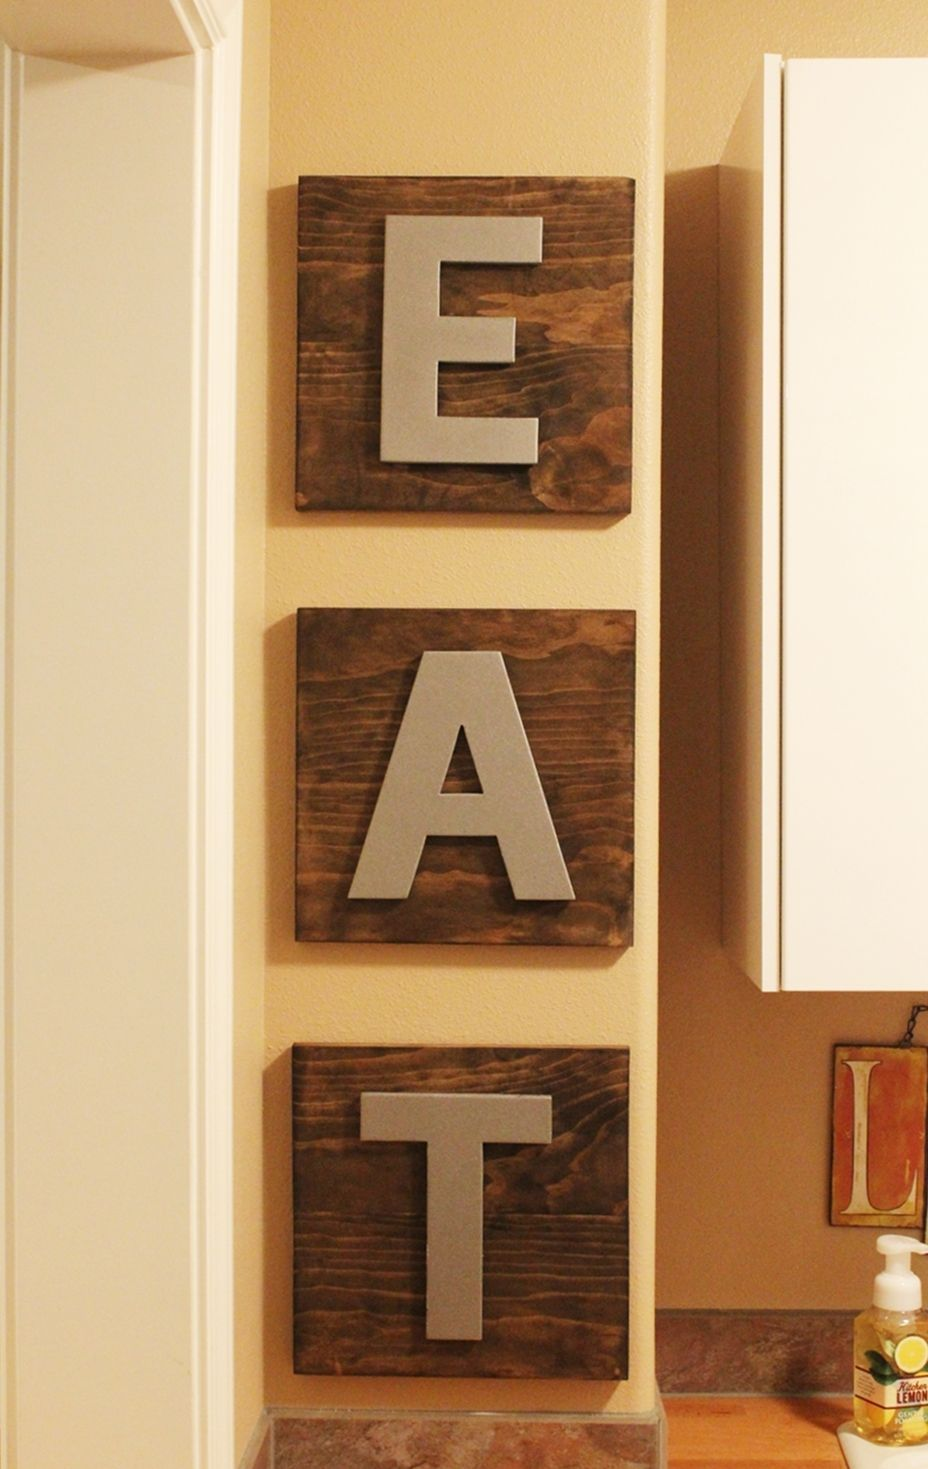 DIY Kitchen Décor: EAT Boards